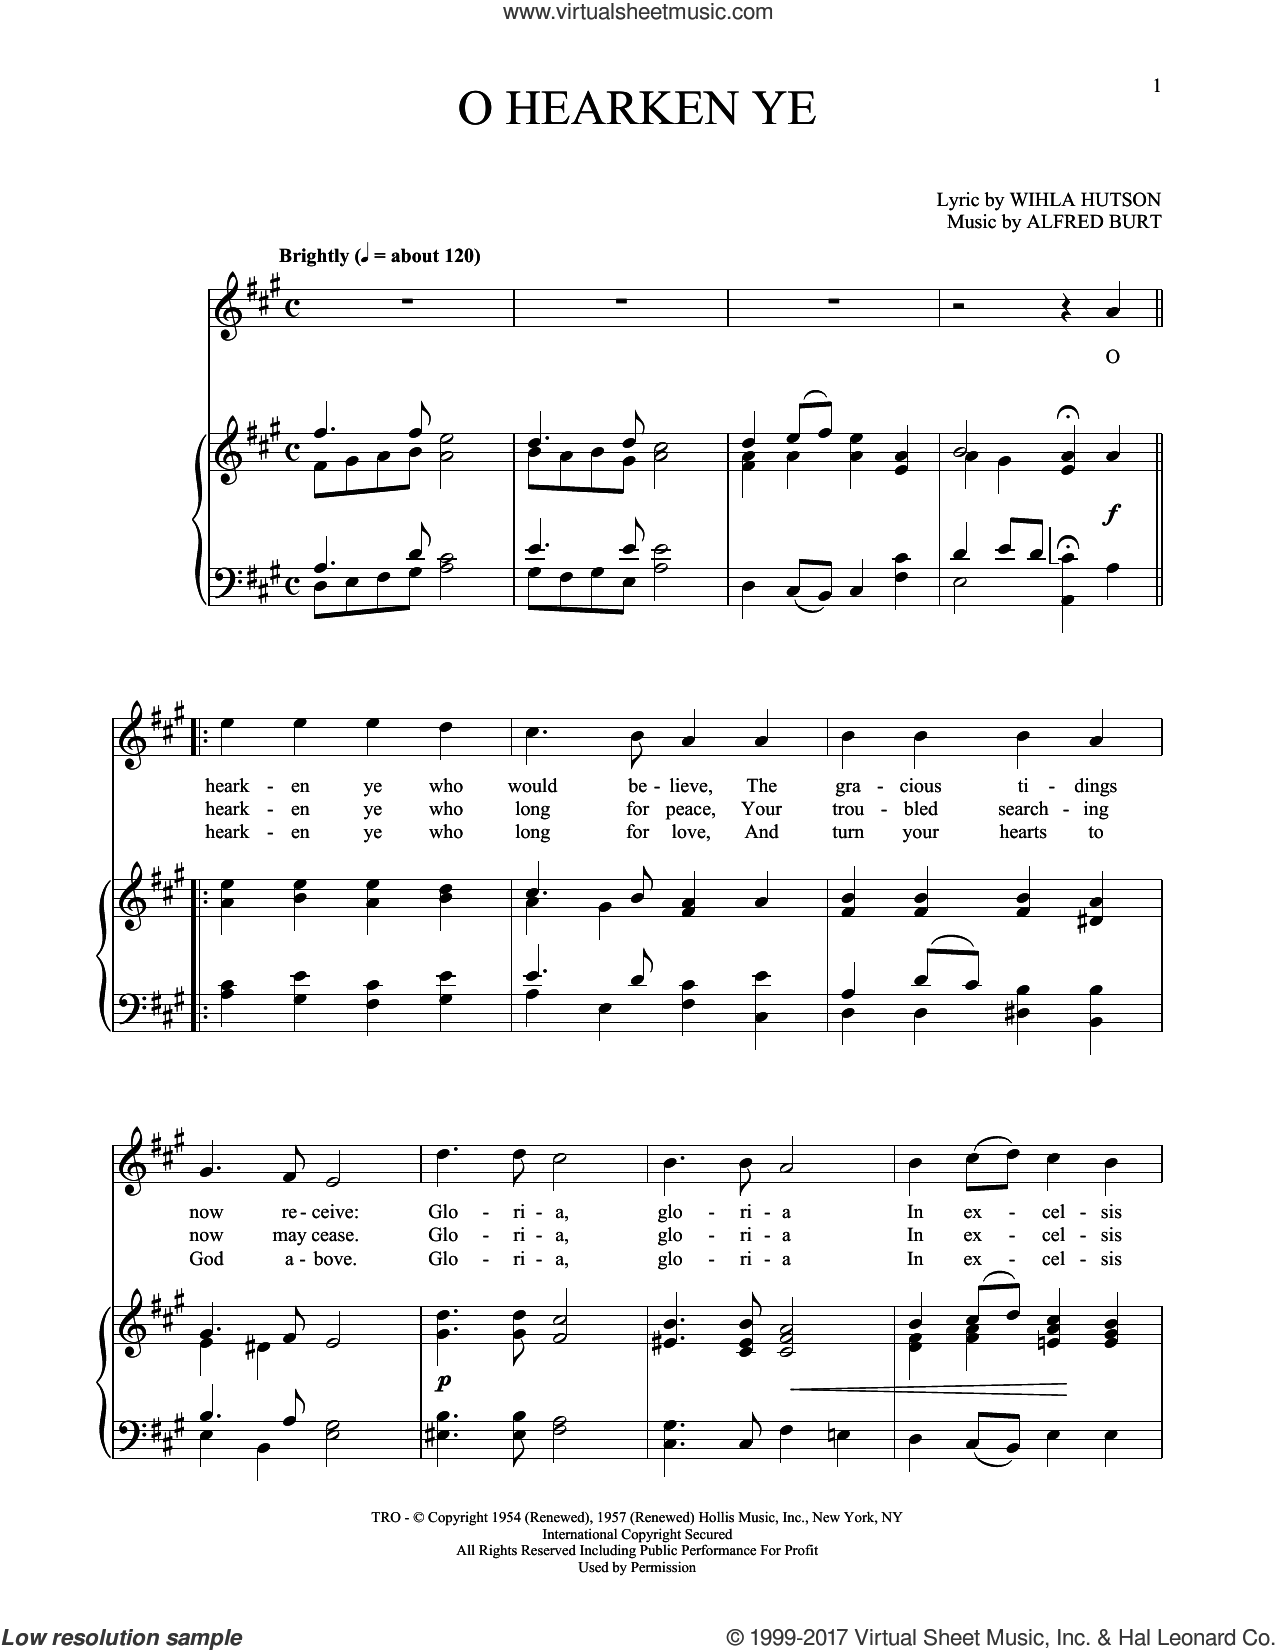 O Hearken Ye sheet music for voice and piano (High Voice) by Alfred Burt and Wihla Hutson, intermediate skill level